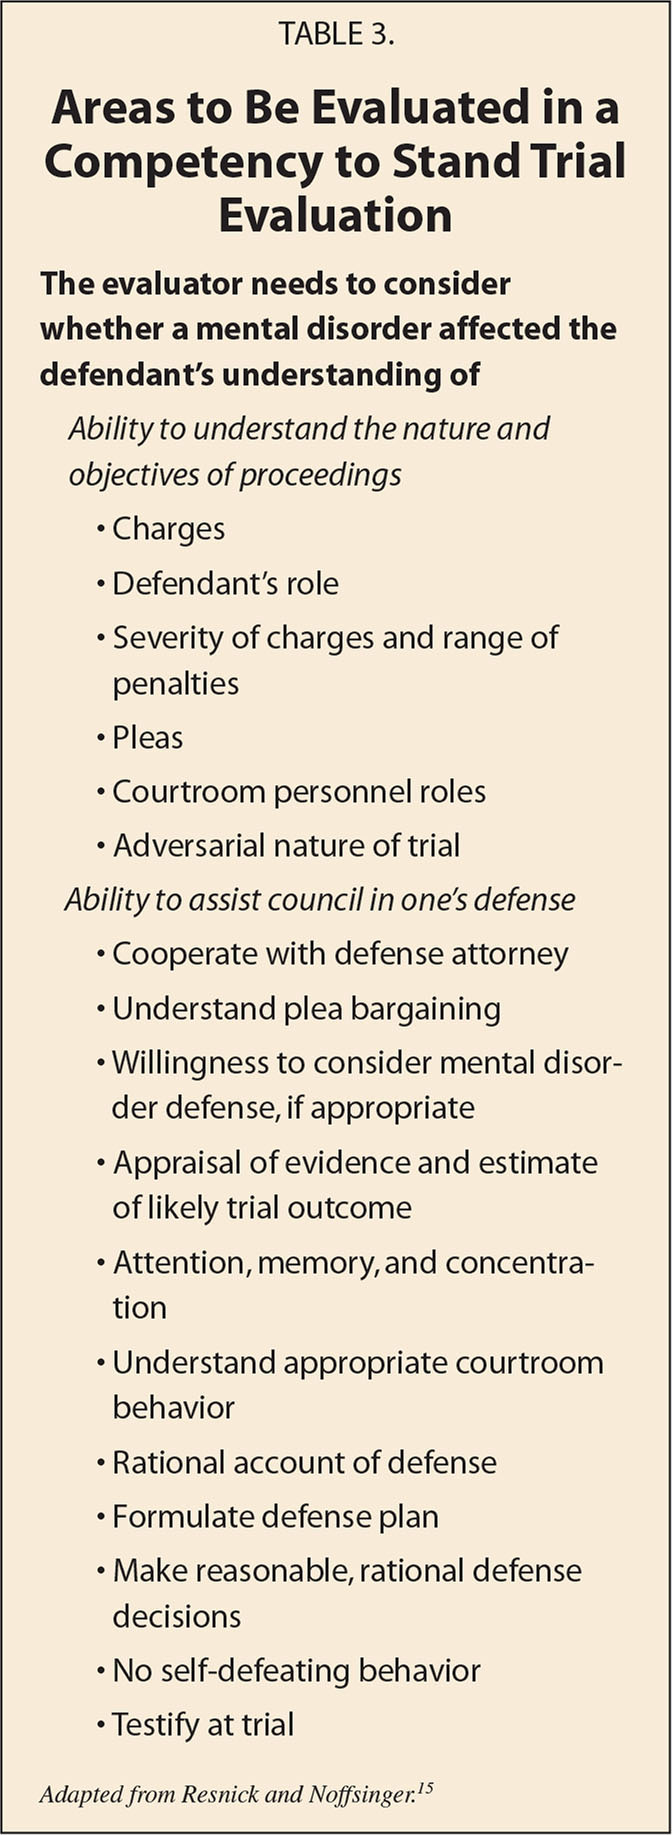 Areas to Be Evaluated in a Competency to Stand Trial Evaluation